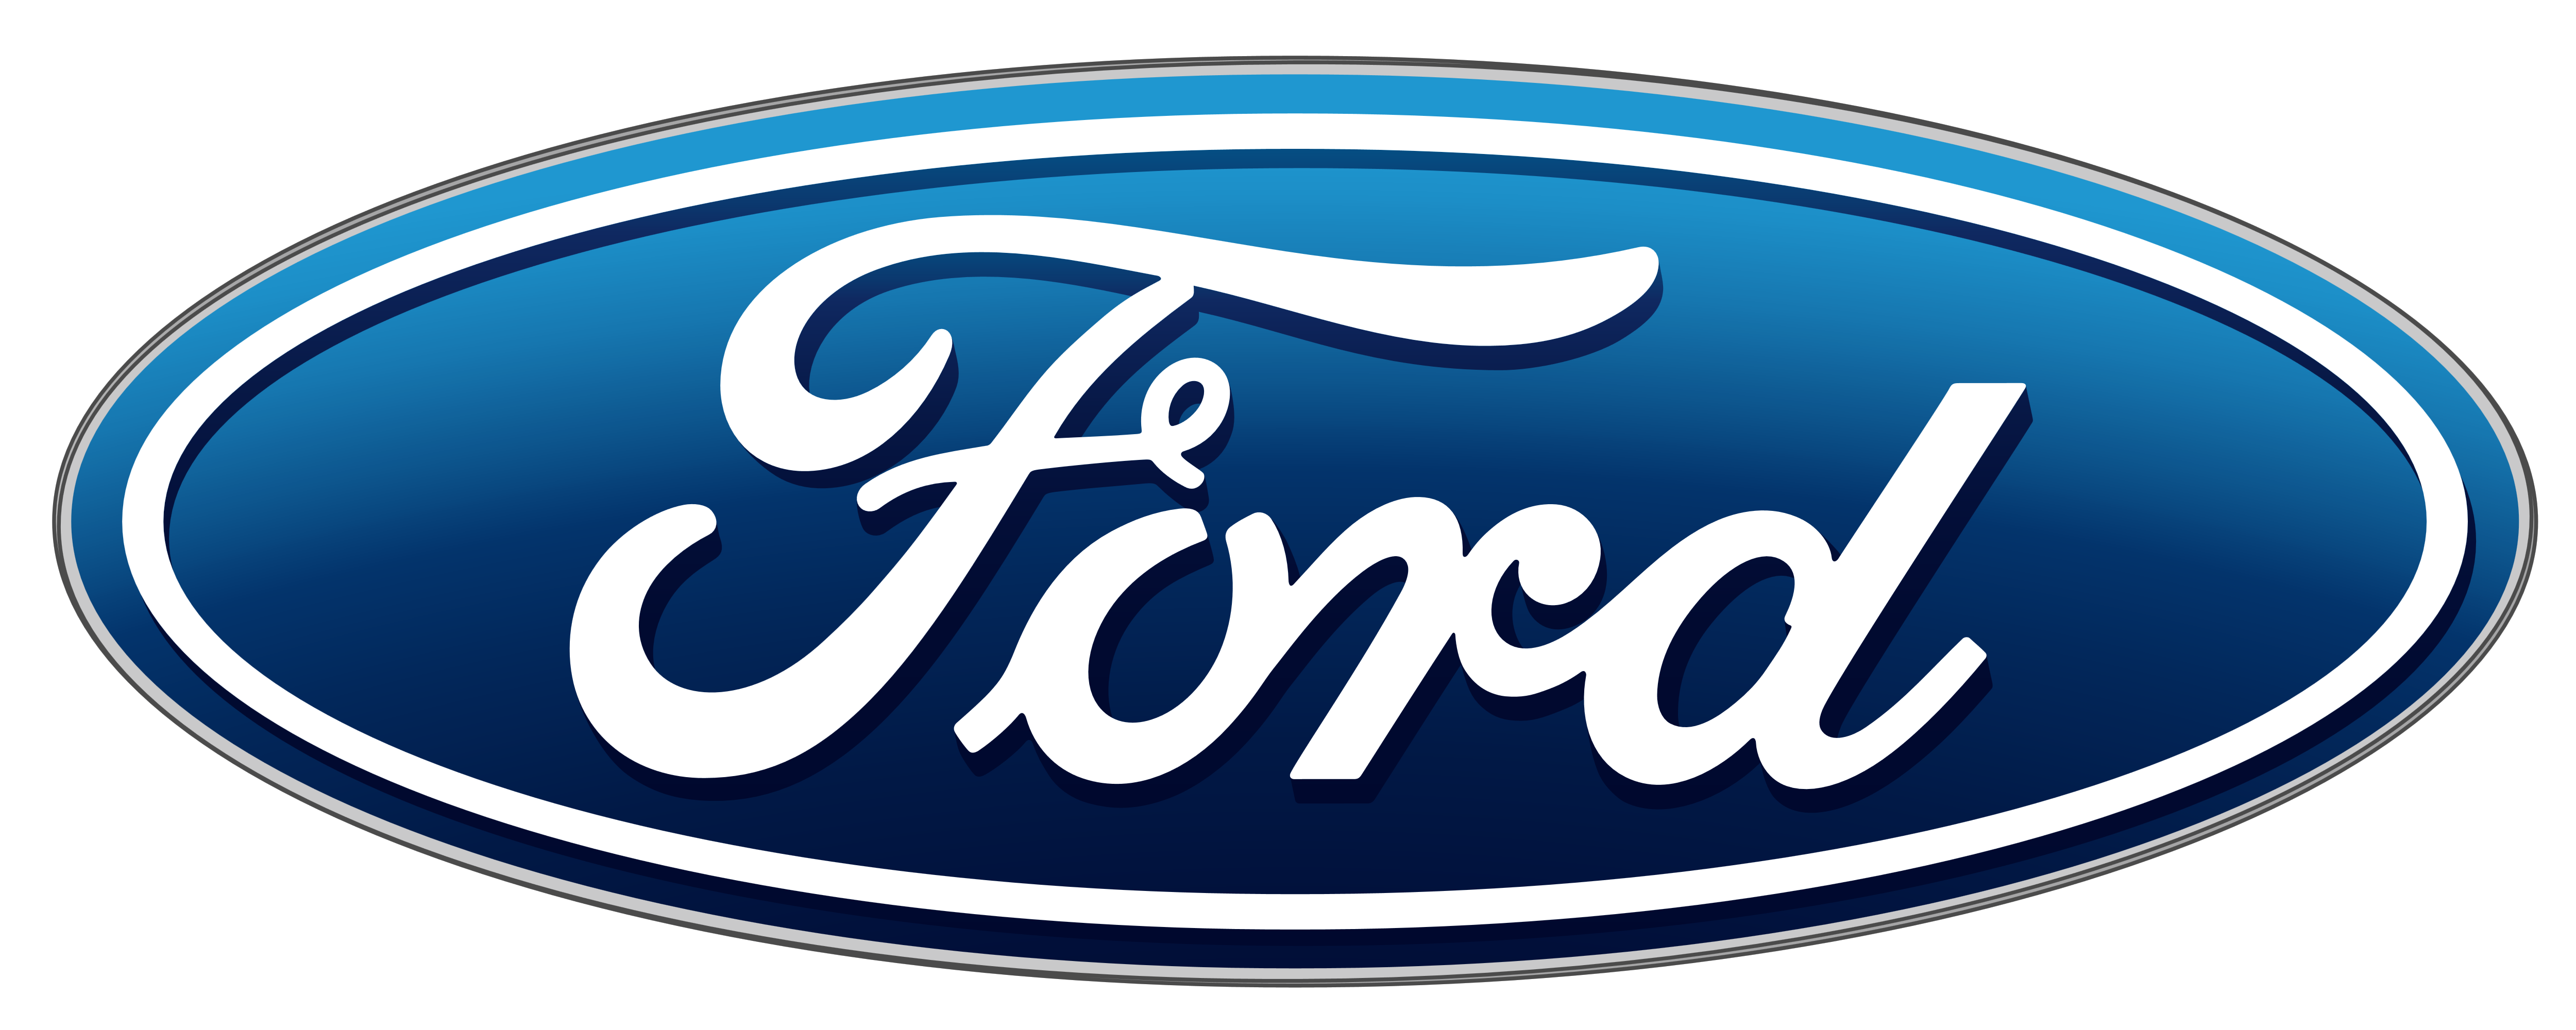 company logo, ford logos download #32526